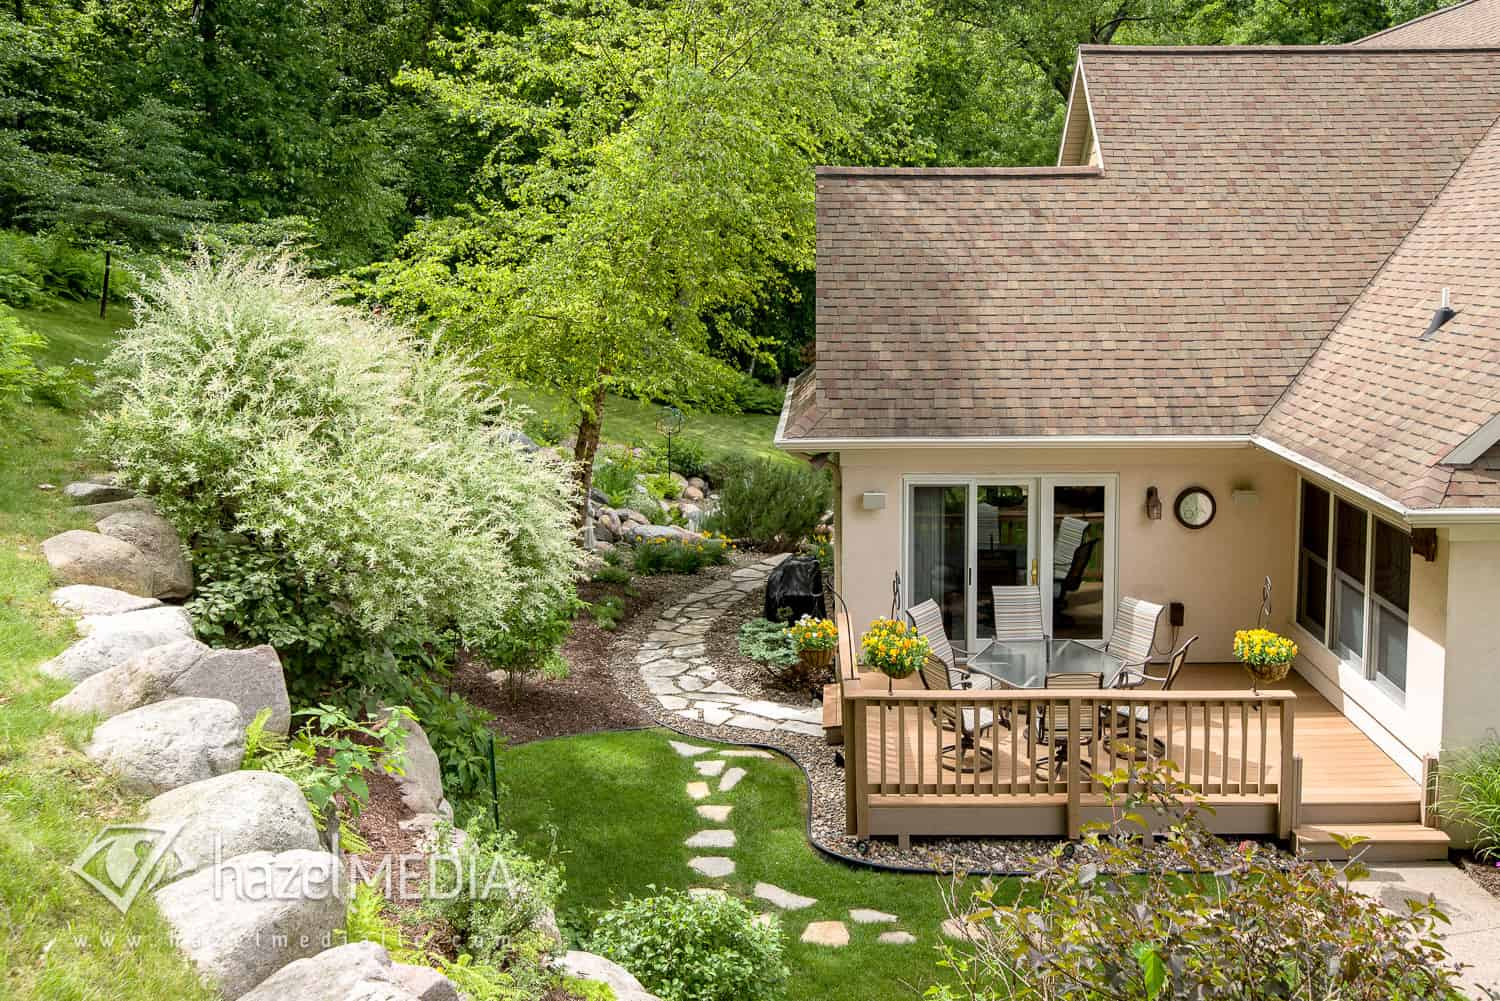 Residential_Exterior_Landscaping